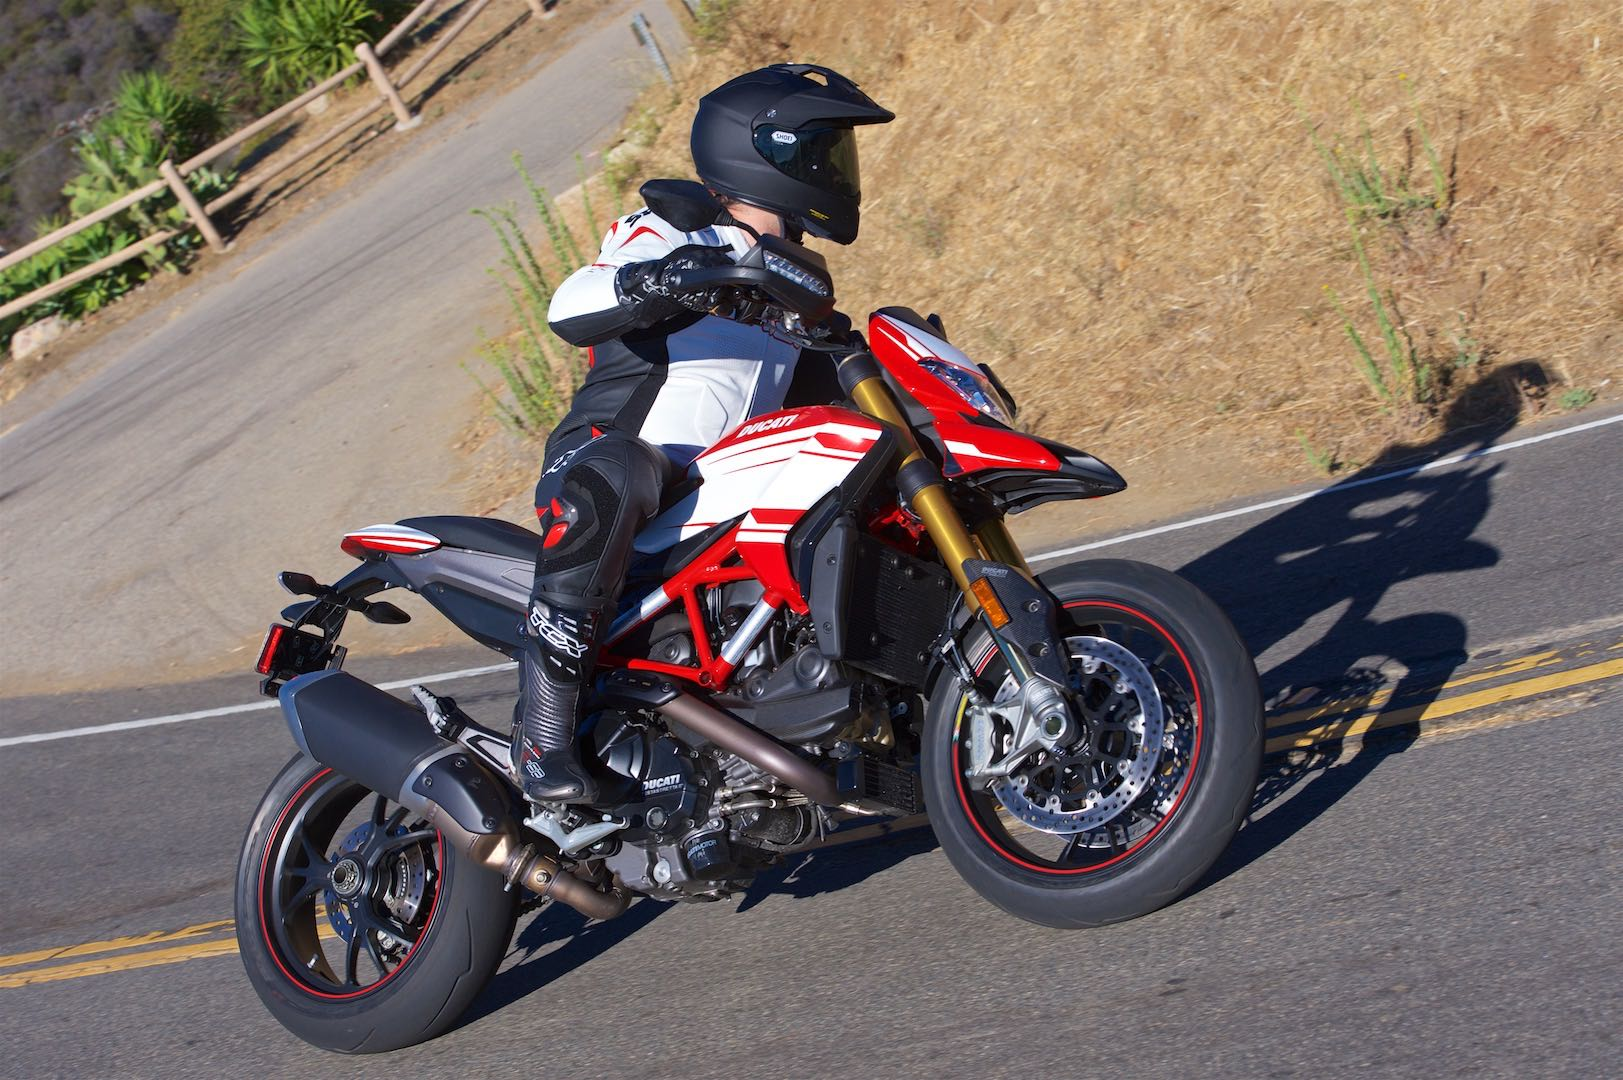 2016 Ducati Hypermotard 939 SP Review | Unwavering Dedication